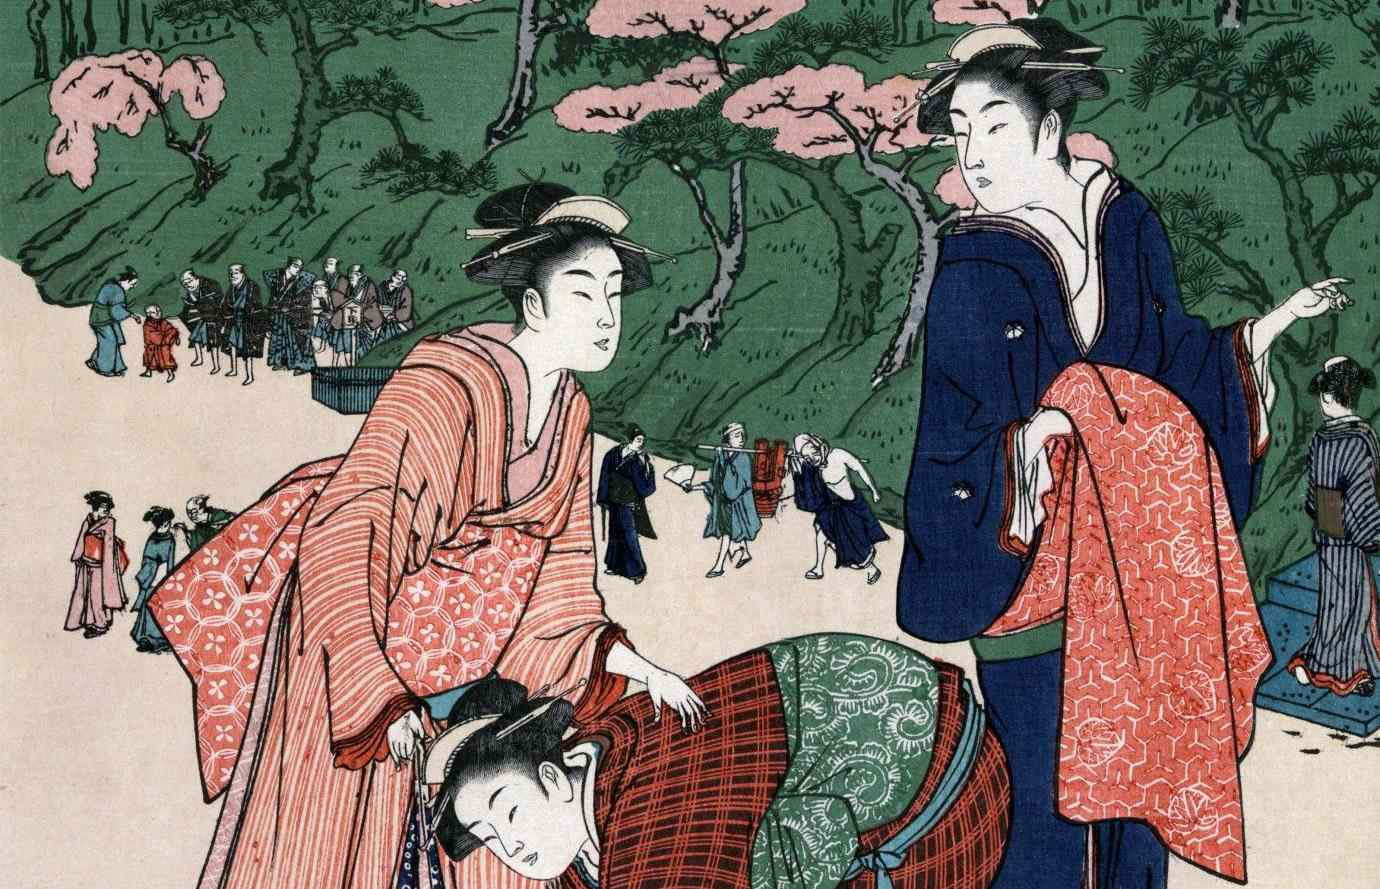 Color sketch of Japanese women with elaborate yoko-hyogo hairstyles.